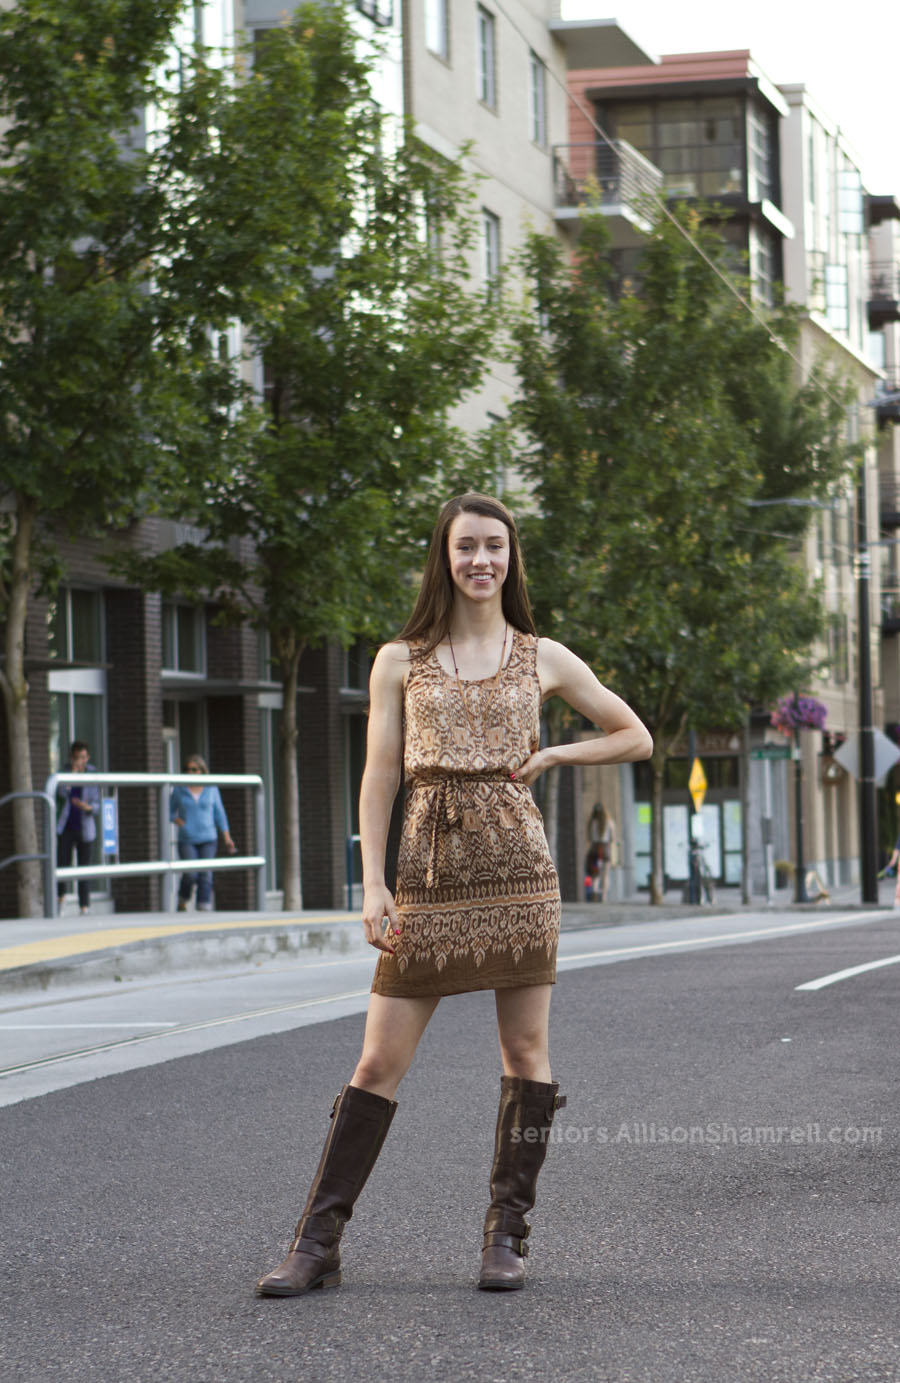 A high school senior in Portland, Oregon stands in downtown streets.